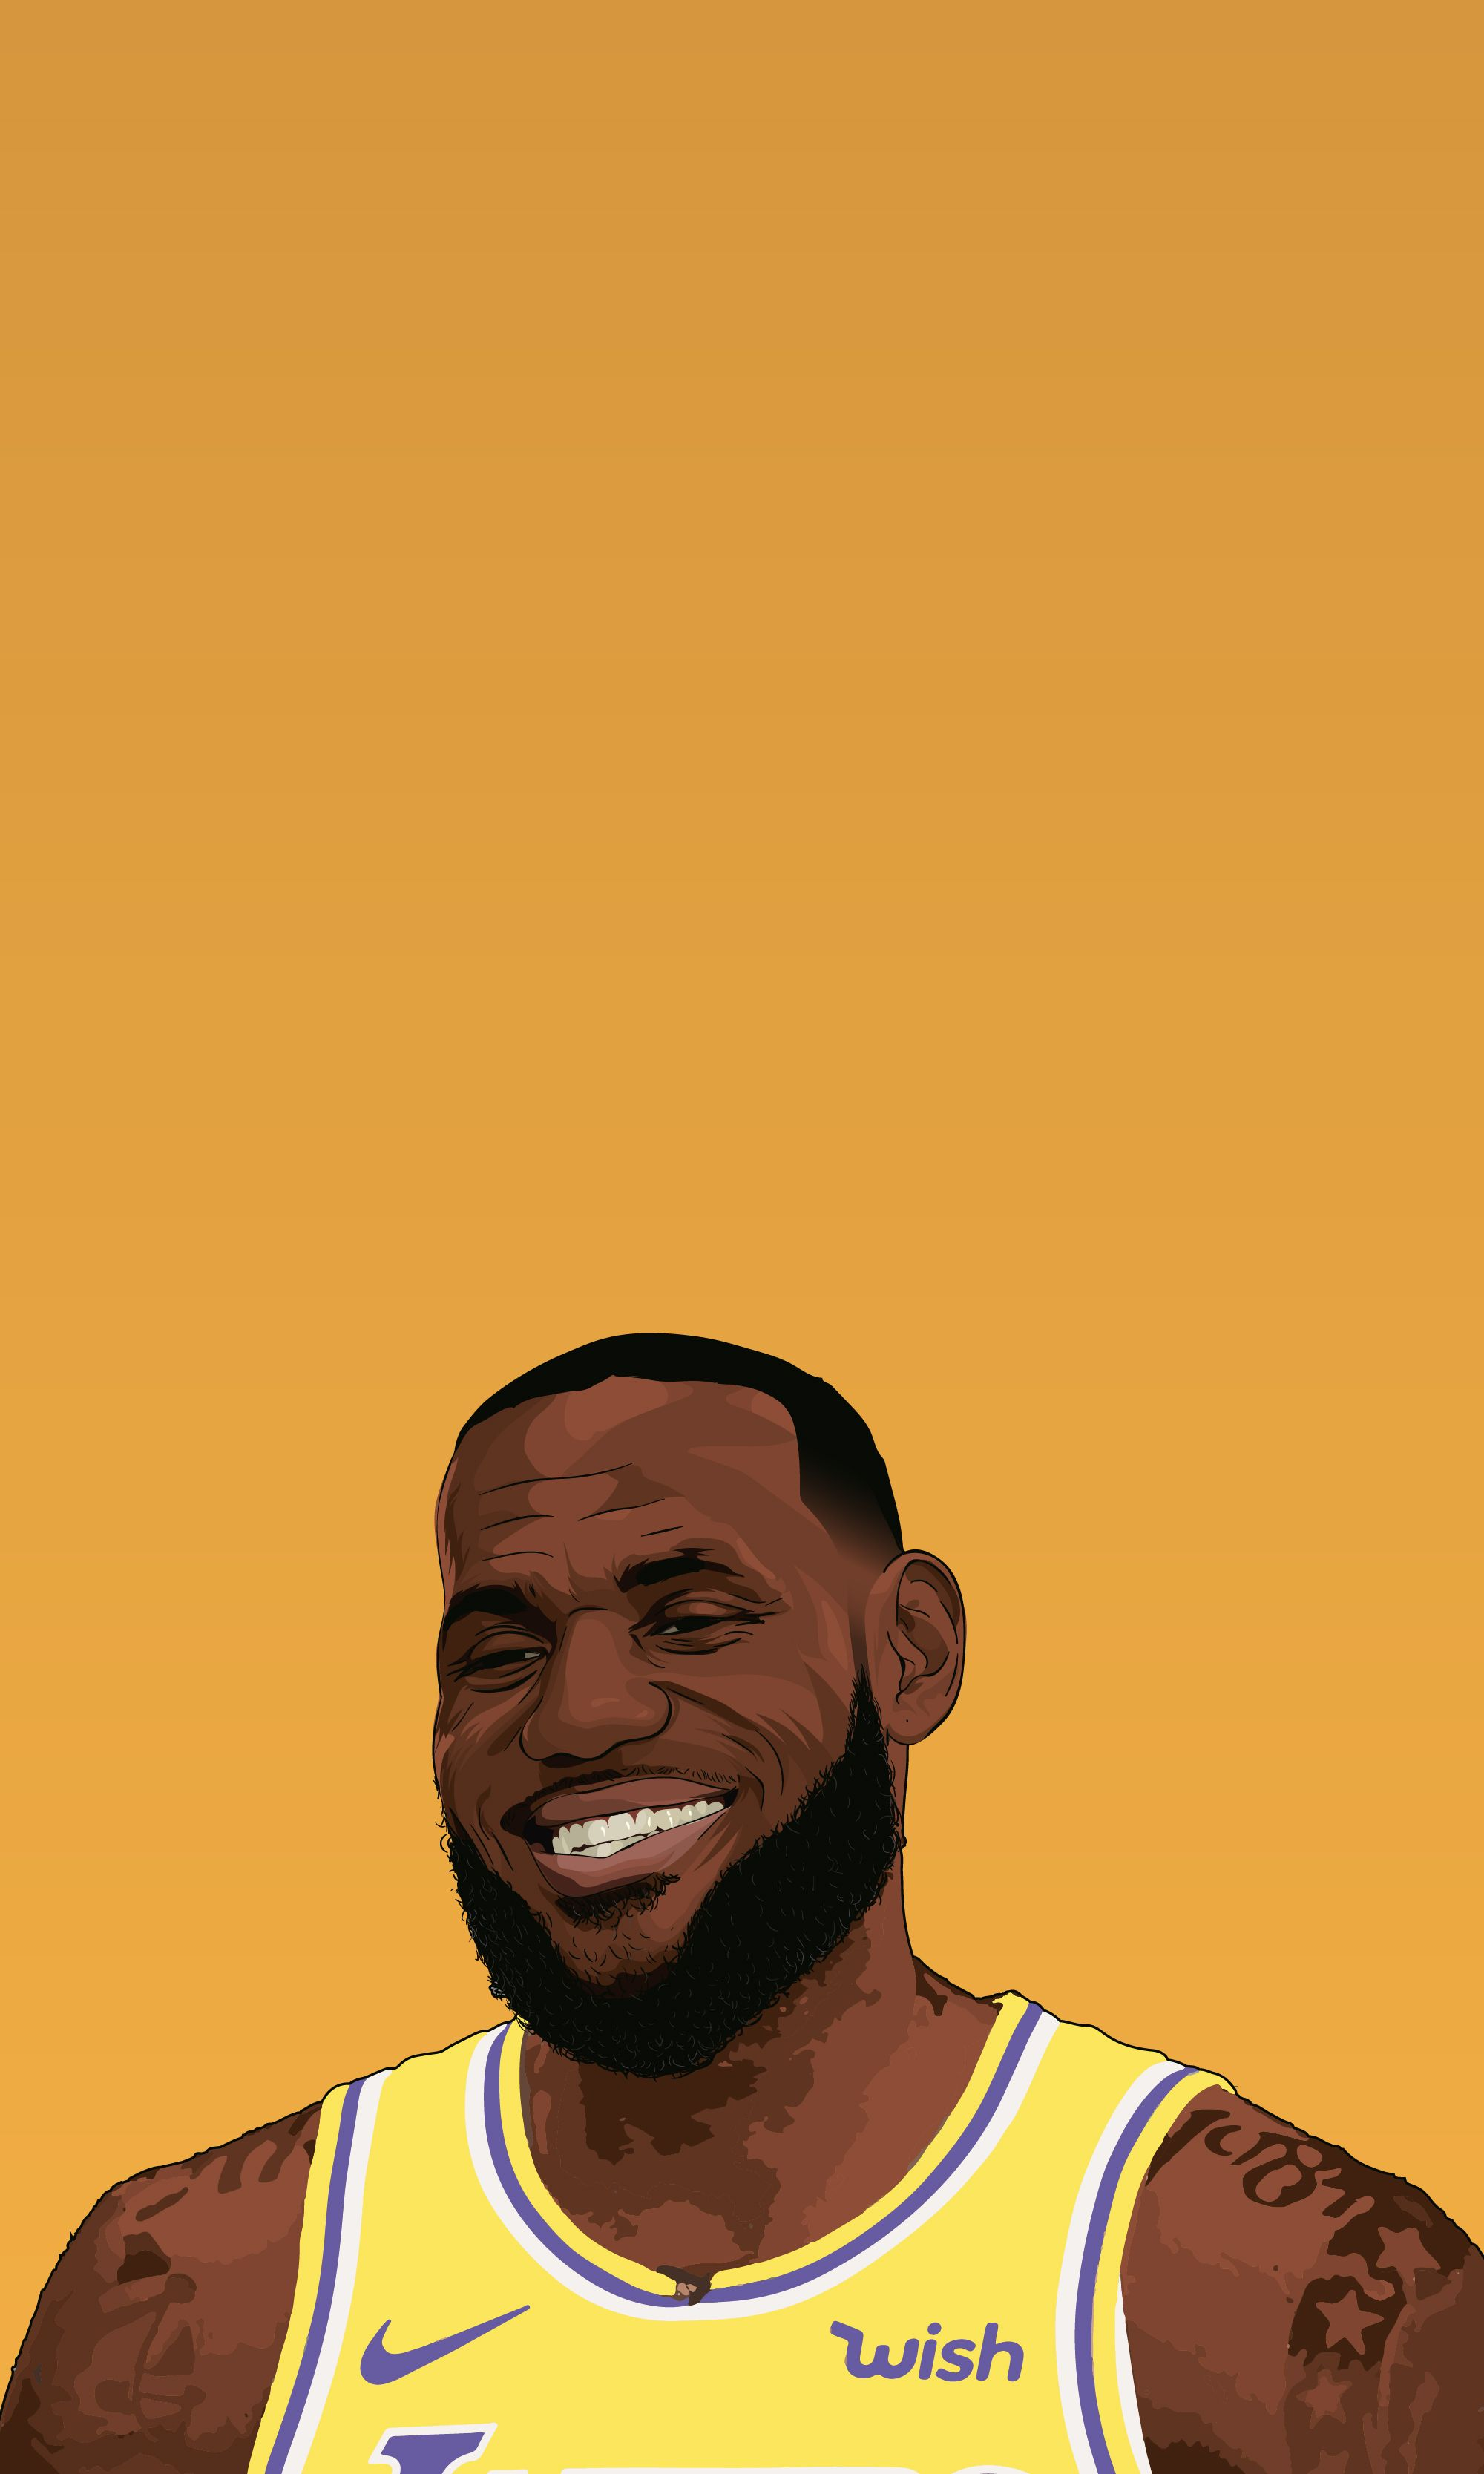 Basketball by Erigh Booysen in 2020 Lebron james